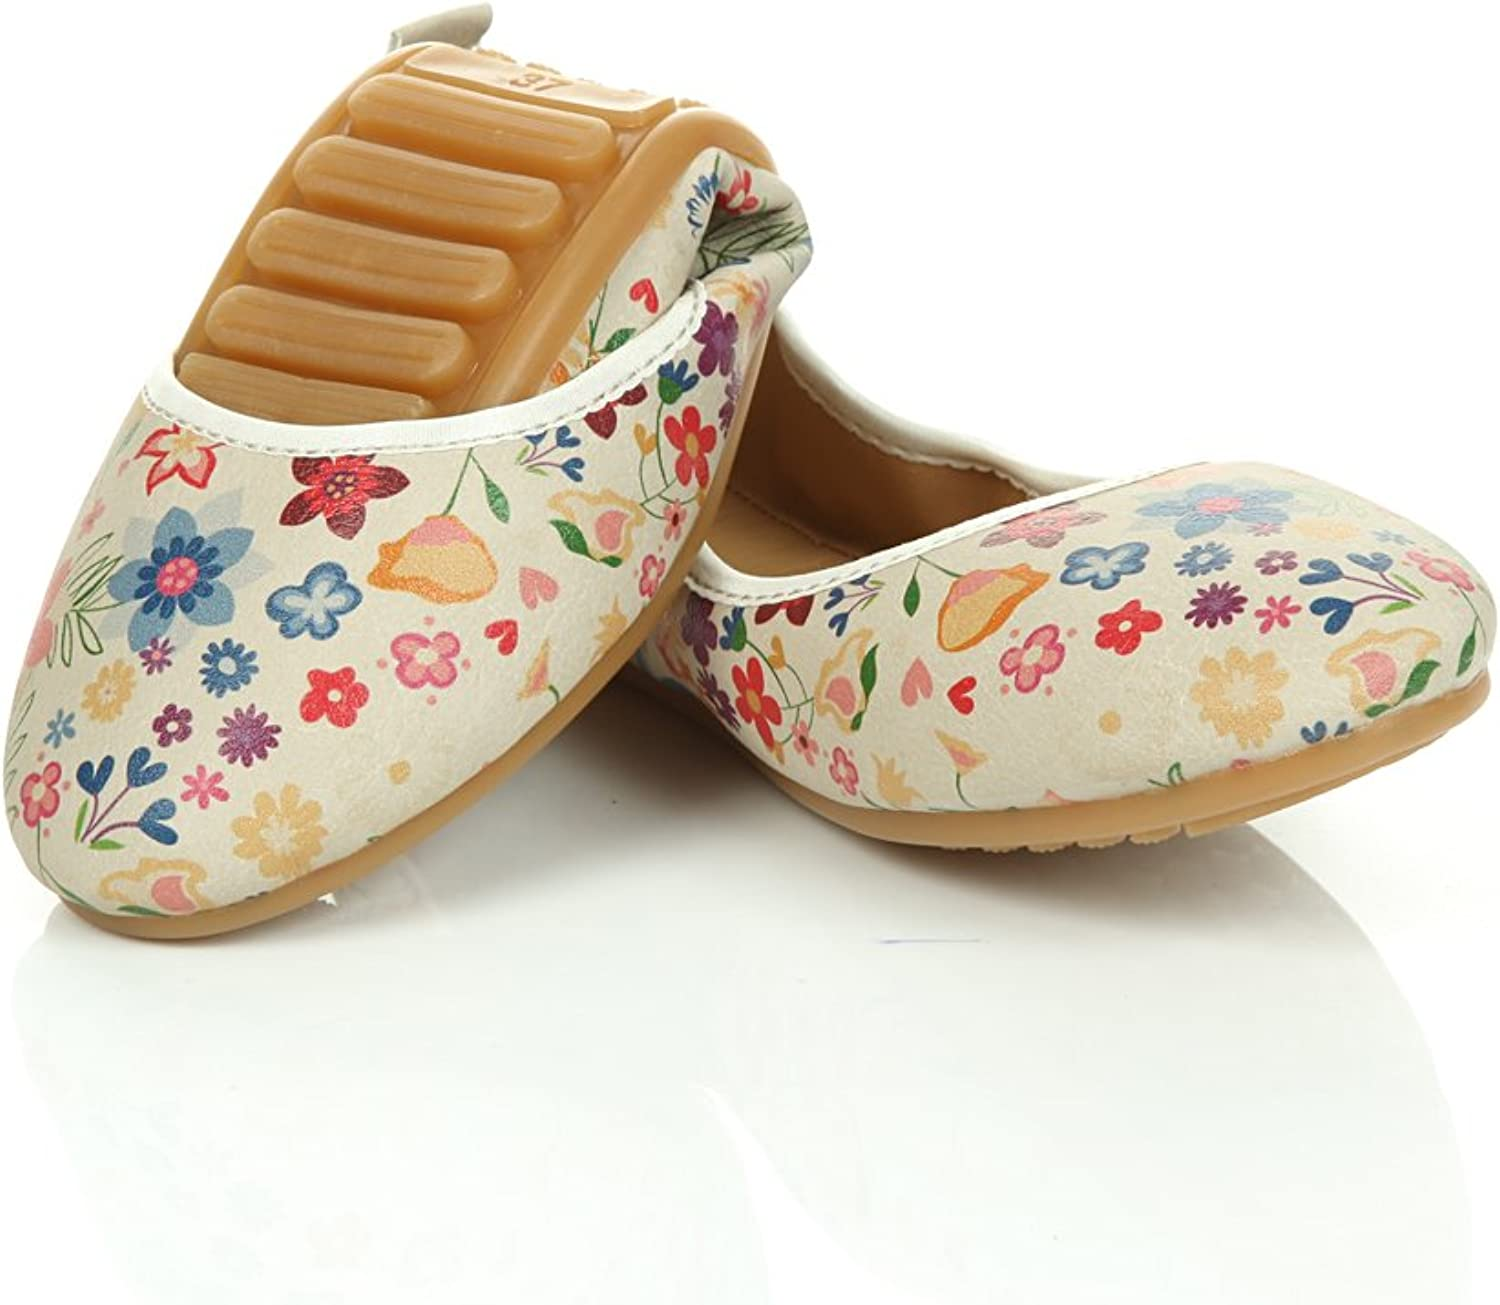 Goby Women's shoes  Flowers Foldable Ballet Flats  'PSP101'